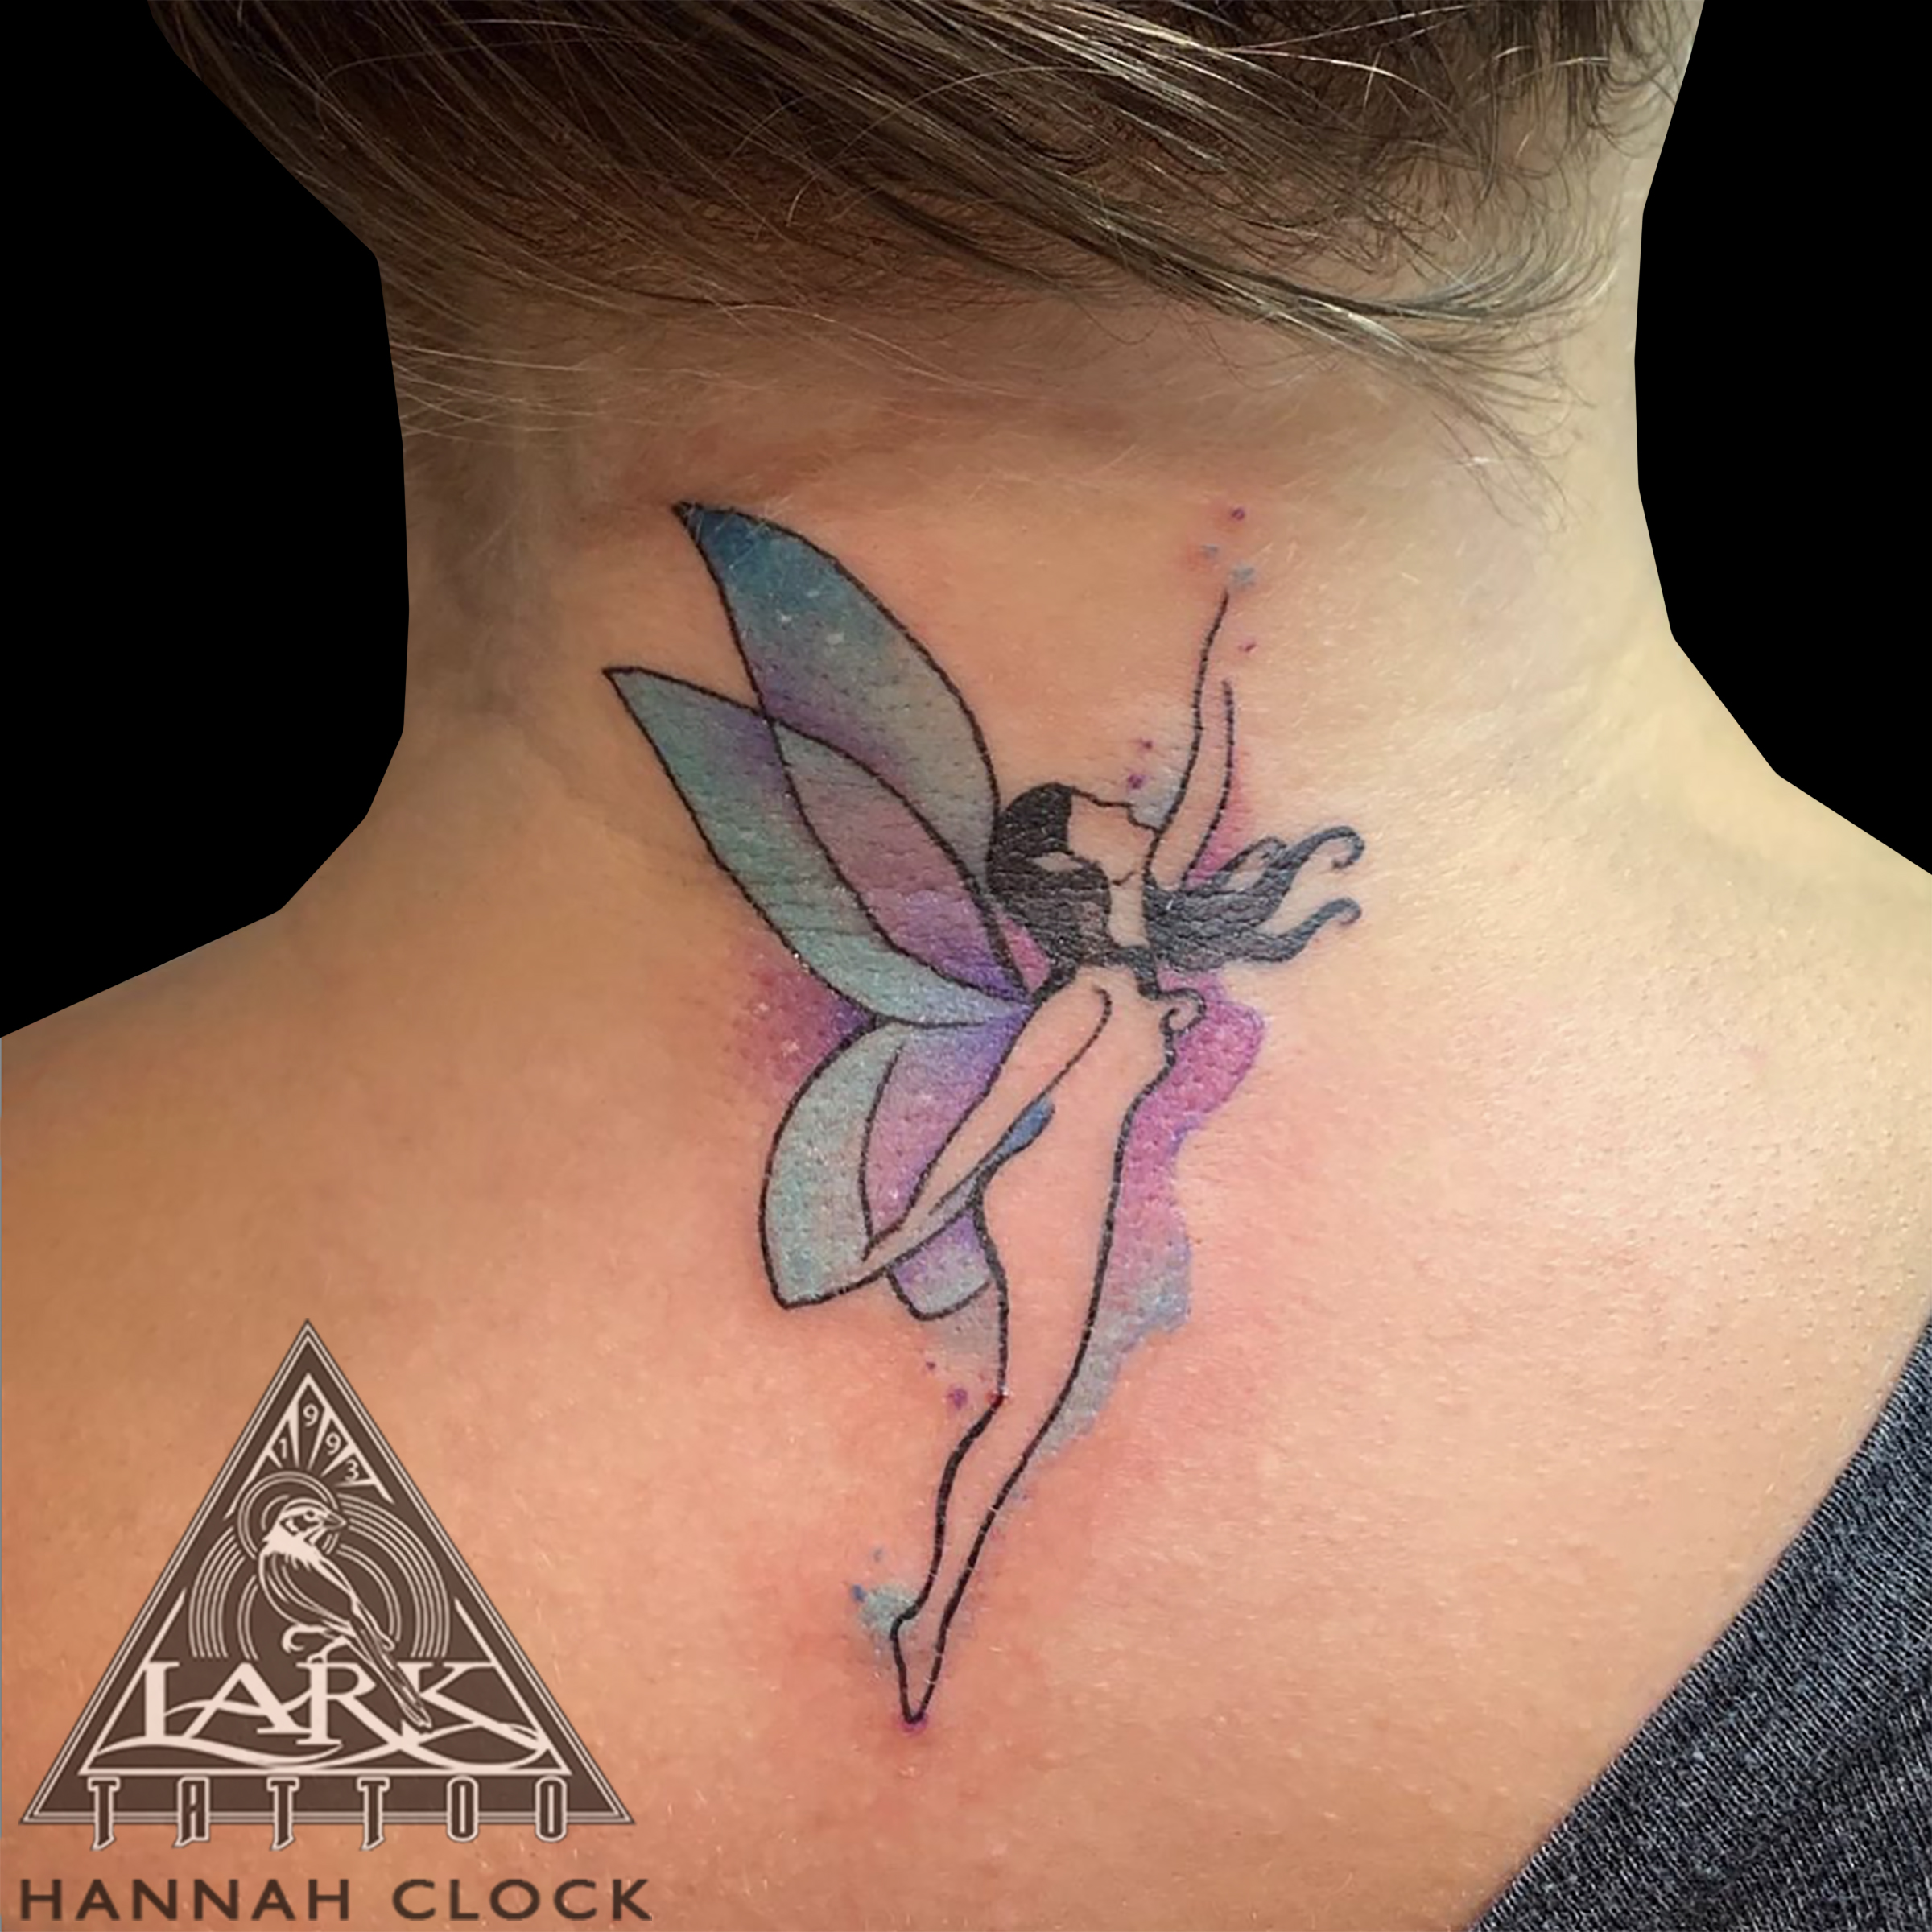 #Fairy #FairyTattoo #WaterColor #WaterColorTattoo #FemaleTattooer #FemaleTattooArtist #LadyTattooer #ColorTattoo #LarkTattoo #Tattoo #Tattoos #TattooArtist #Tattoist #Tattooer #LongIslandTattooArtist #LongIslandTattooer #LongIslandTattoo #TattooOfTheDay #Tat #Tats #Tatts #Tatted #Inked #Ink #TattooInk #AmazingInk #AmazingTattoo #BodyArt #LarkTattooWestbury #Westbury #LongIsland #NY #NewYork #USA #Art #Tattedup #InkedUp #LarkTattoos